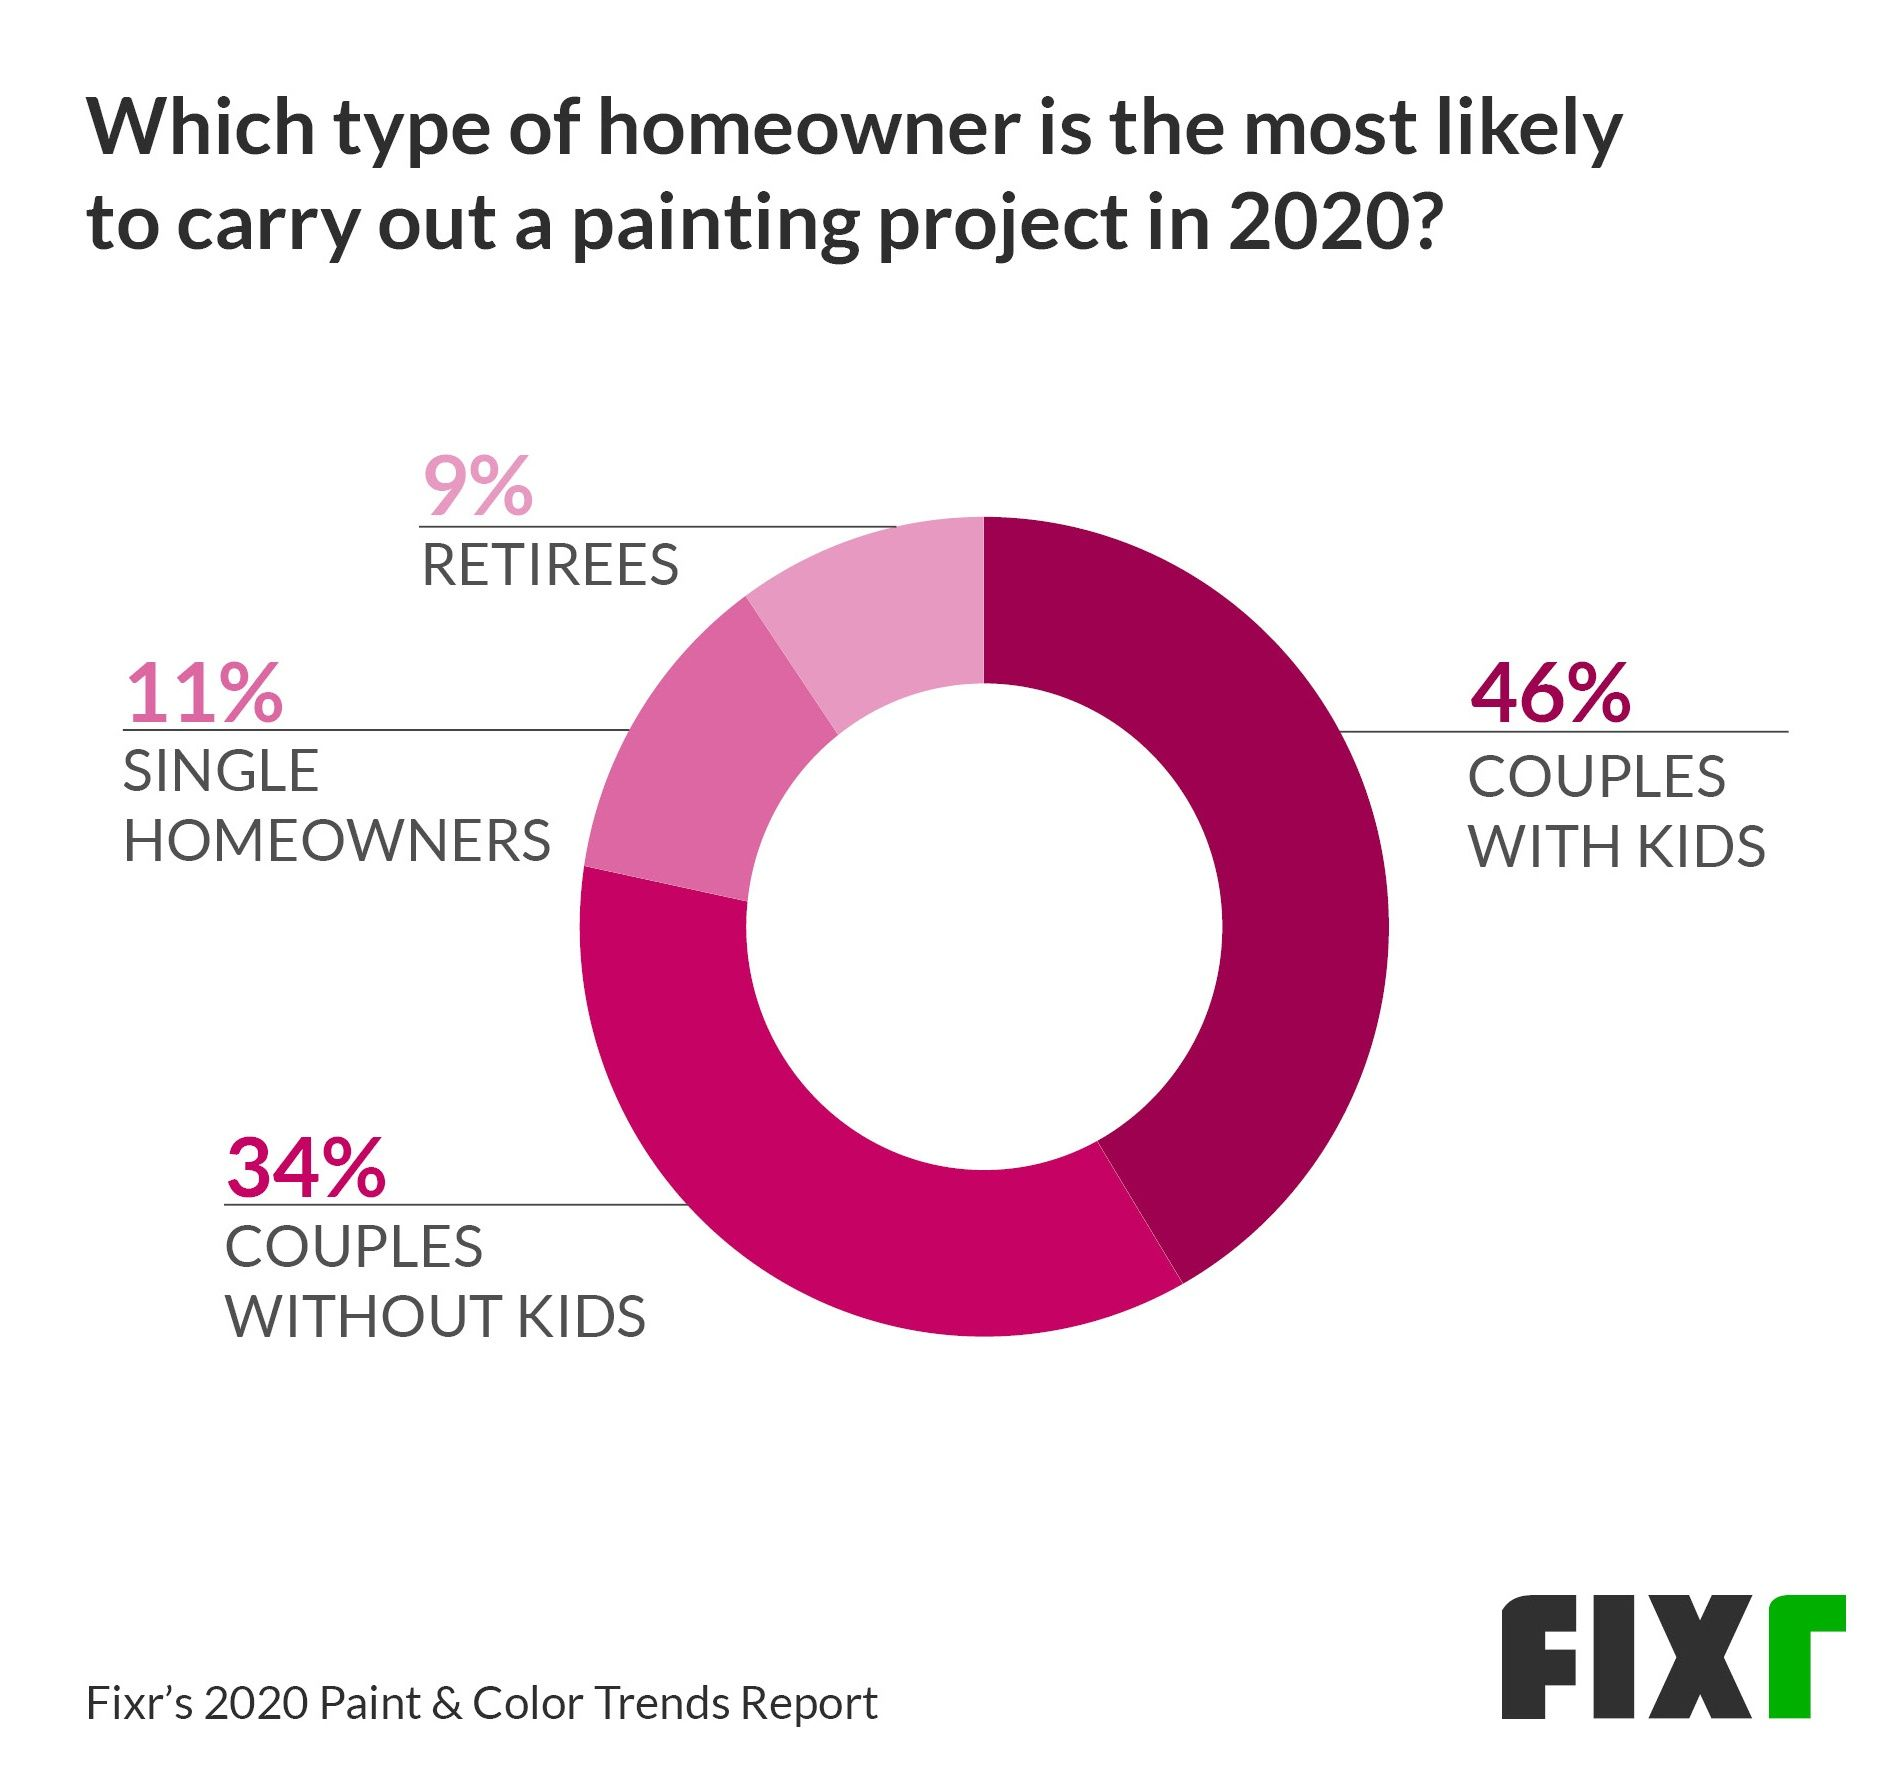 Type of homeowner most likely to carry out a painting project in 2020